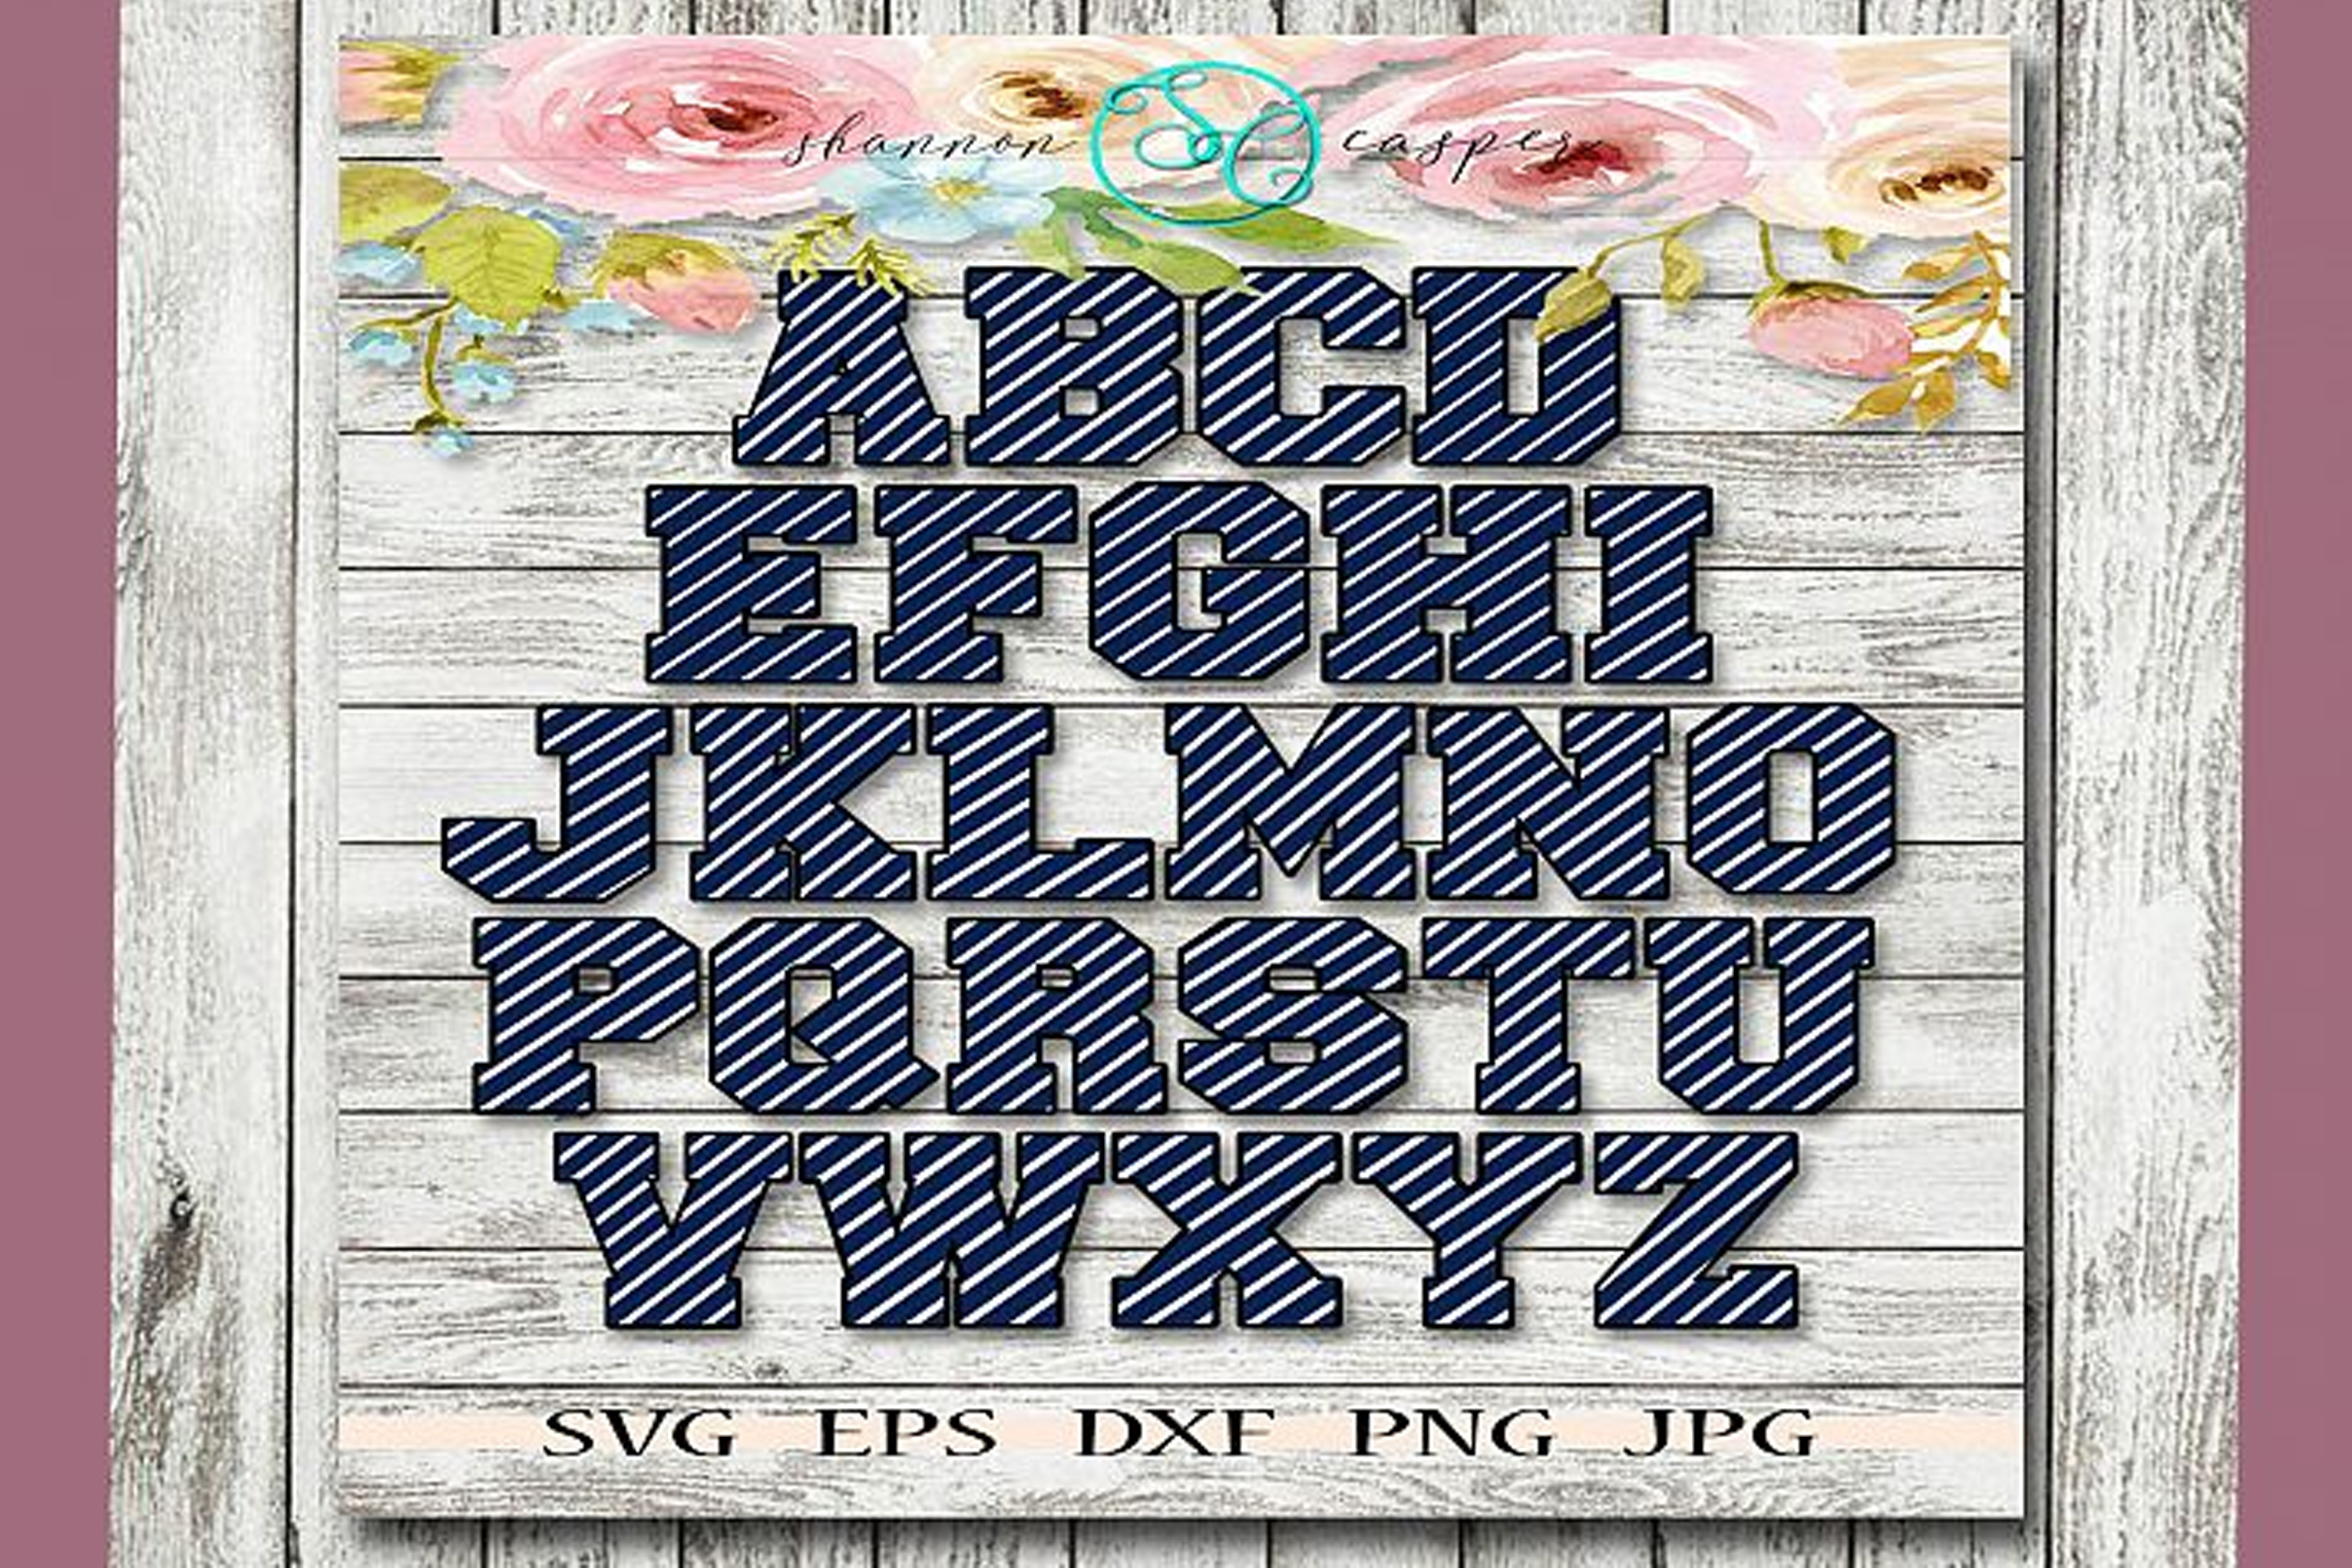 Download Free Chuncky Letters And Numbers Graphic By Shannon Casper Creative for Cricut Explore, Silhouette and other cutting machines.